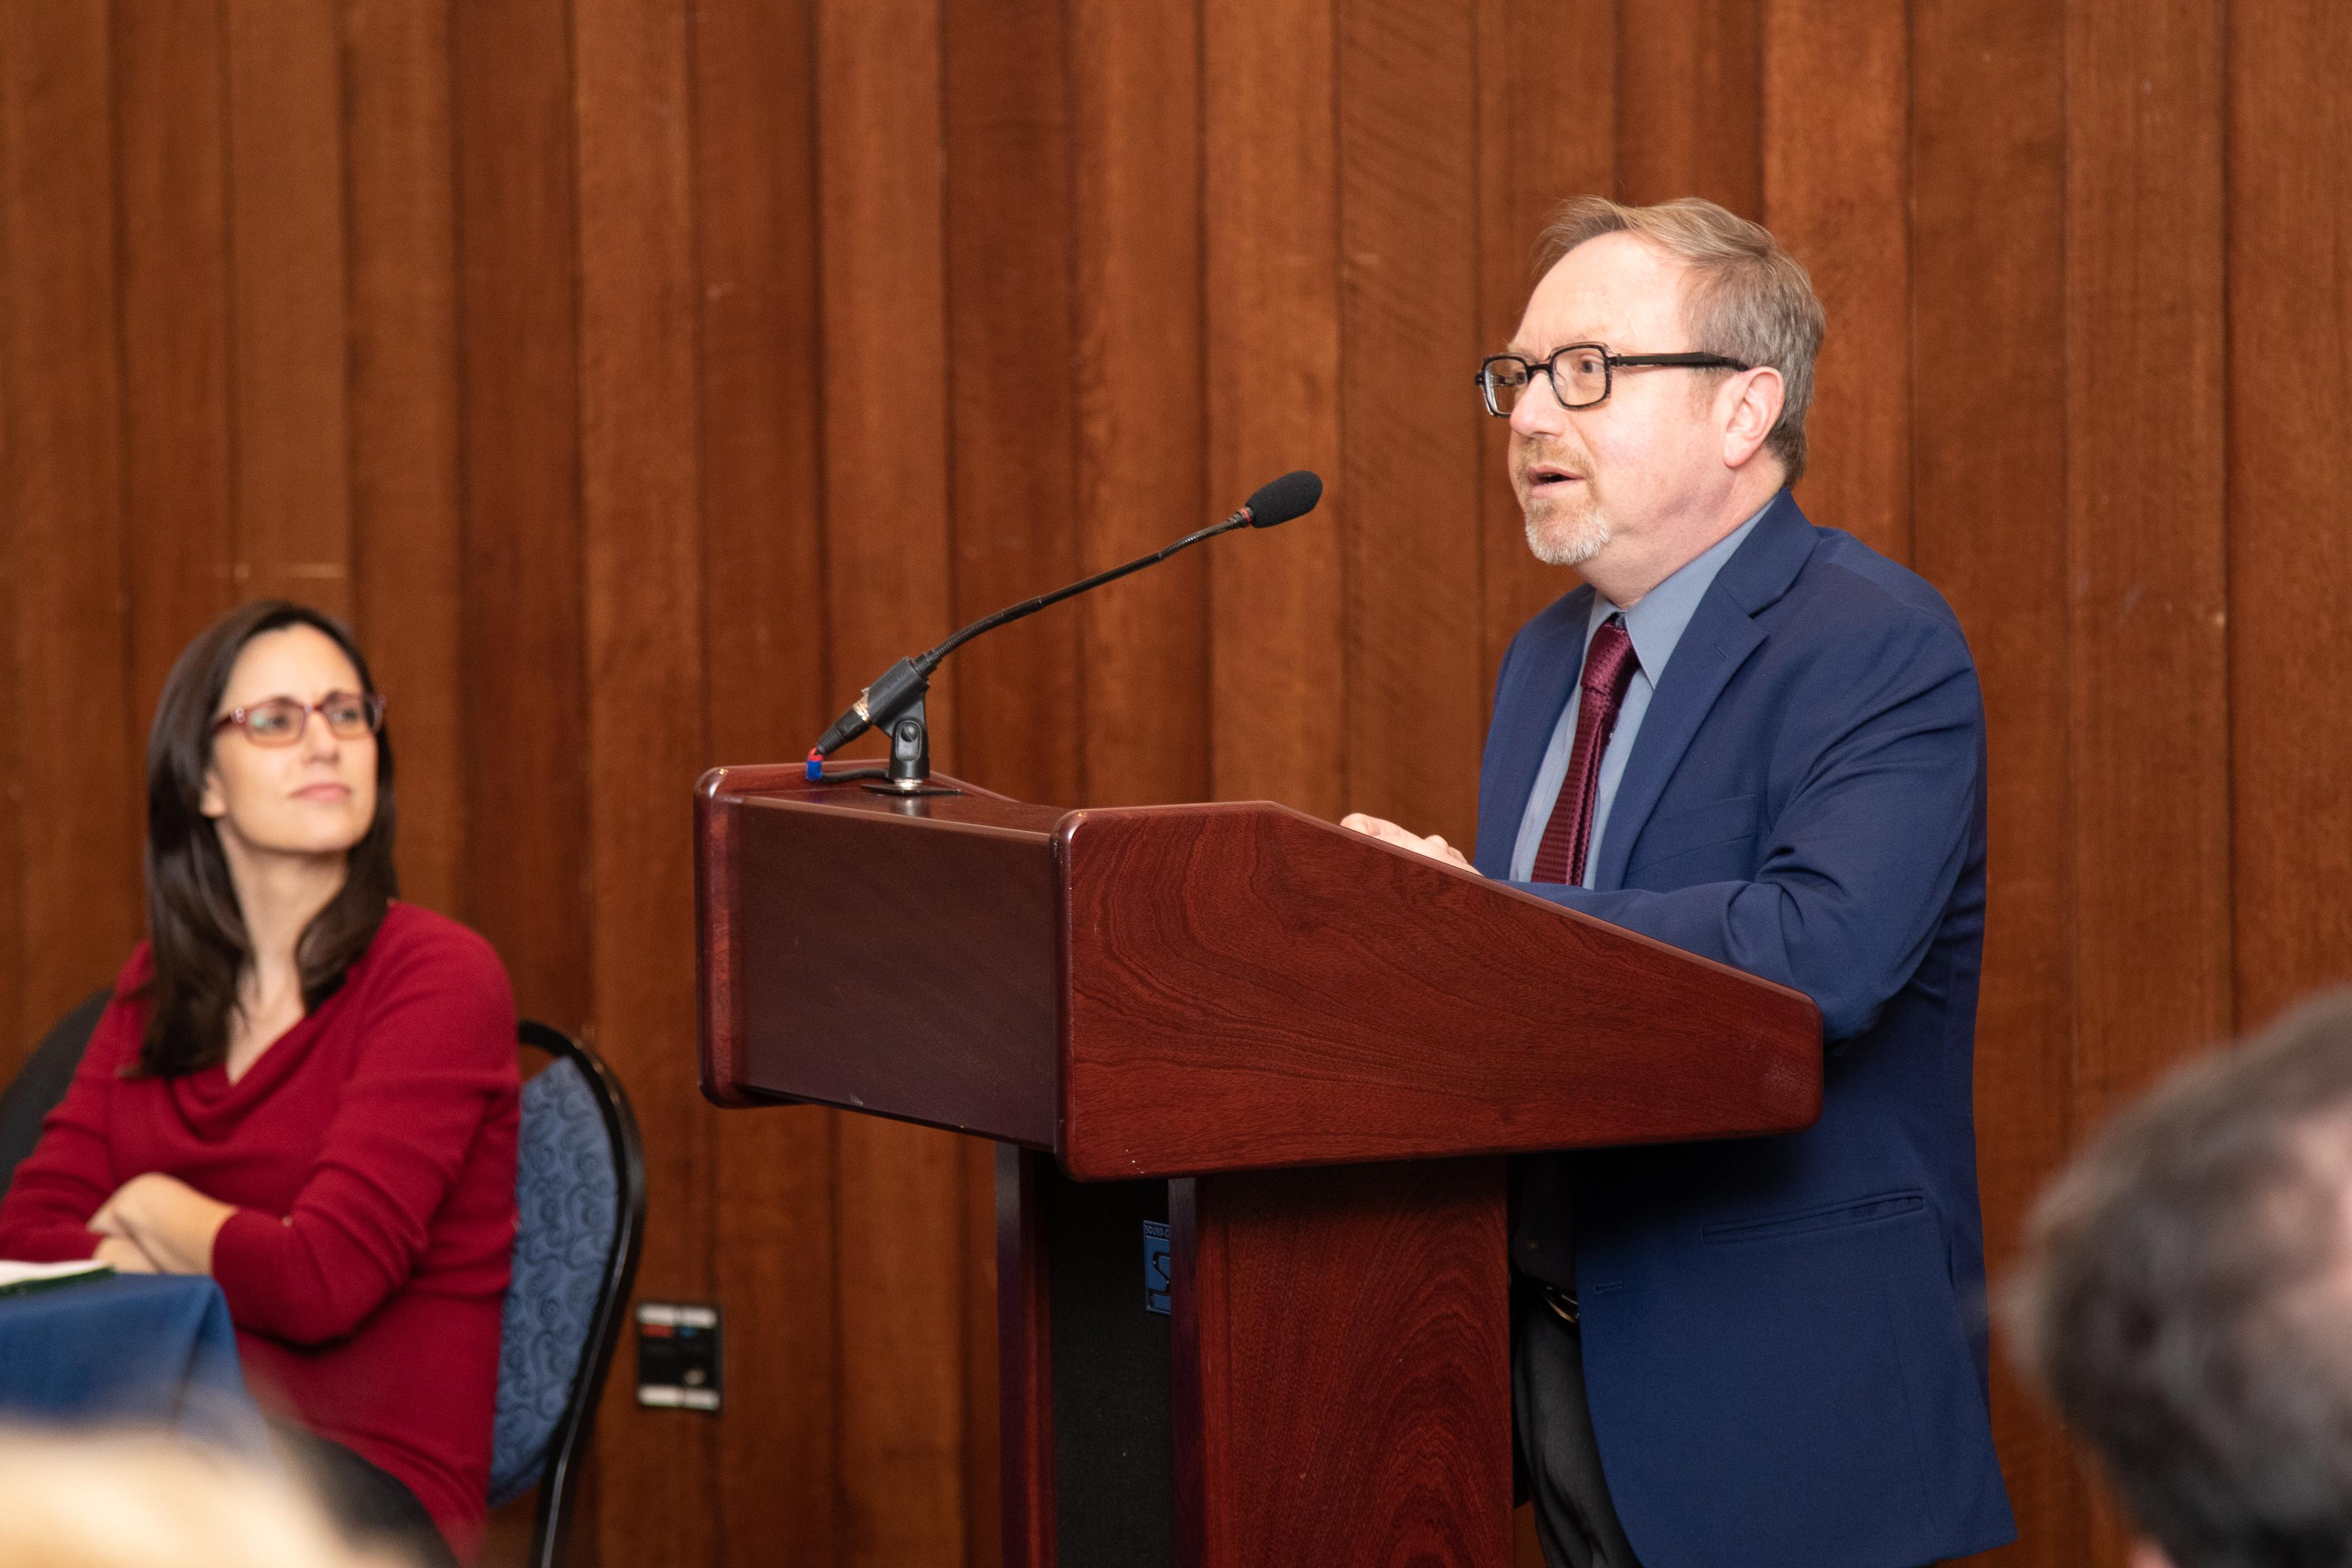 Notes from the 2018 Meyerhoff Lecture